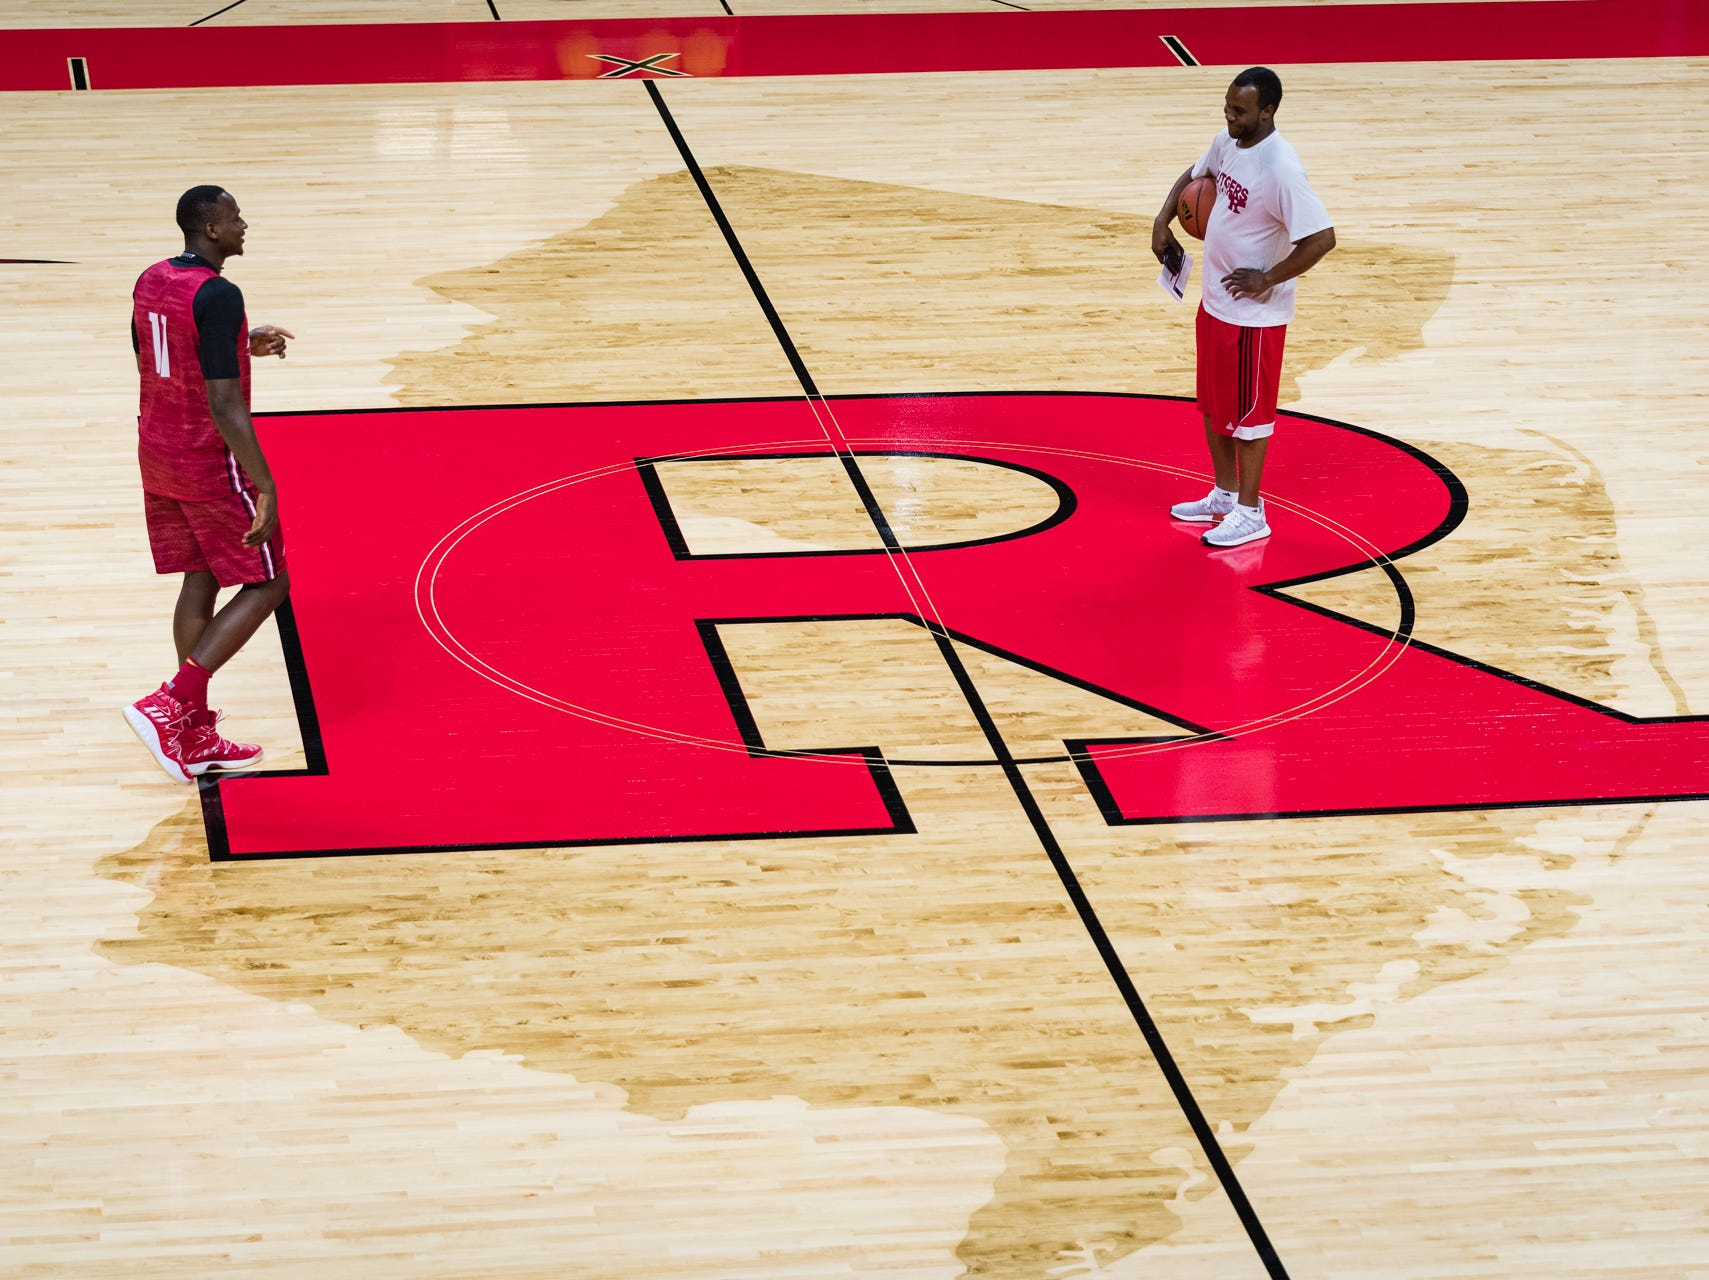 Rutgers Men's Basketball summer practice in preparation for the 2018-19 basketball season on the newly reconstructed basketball court.